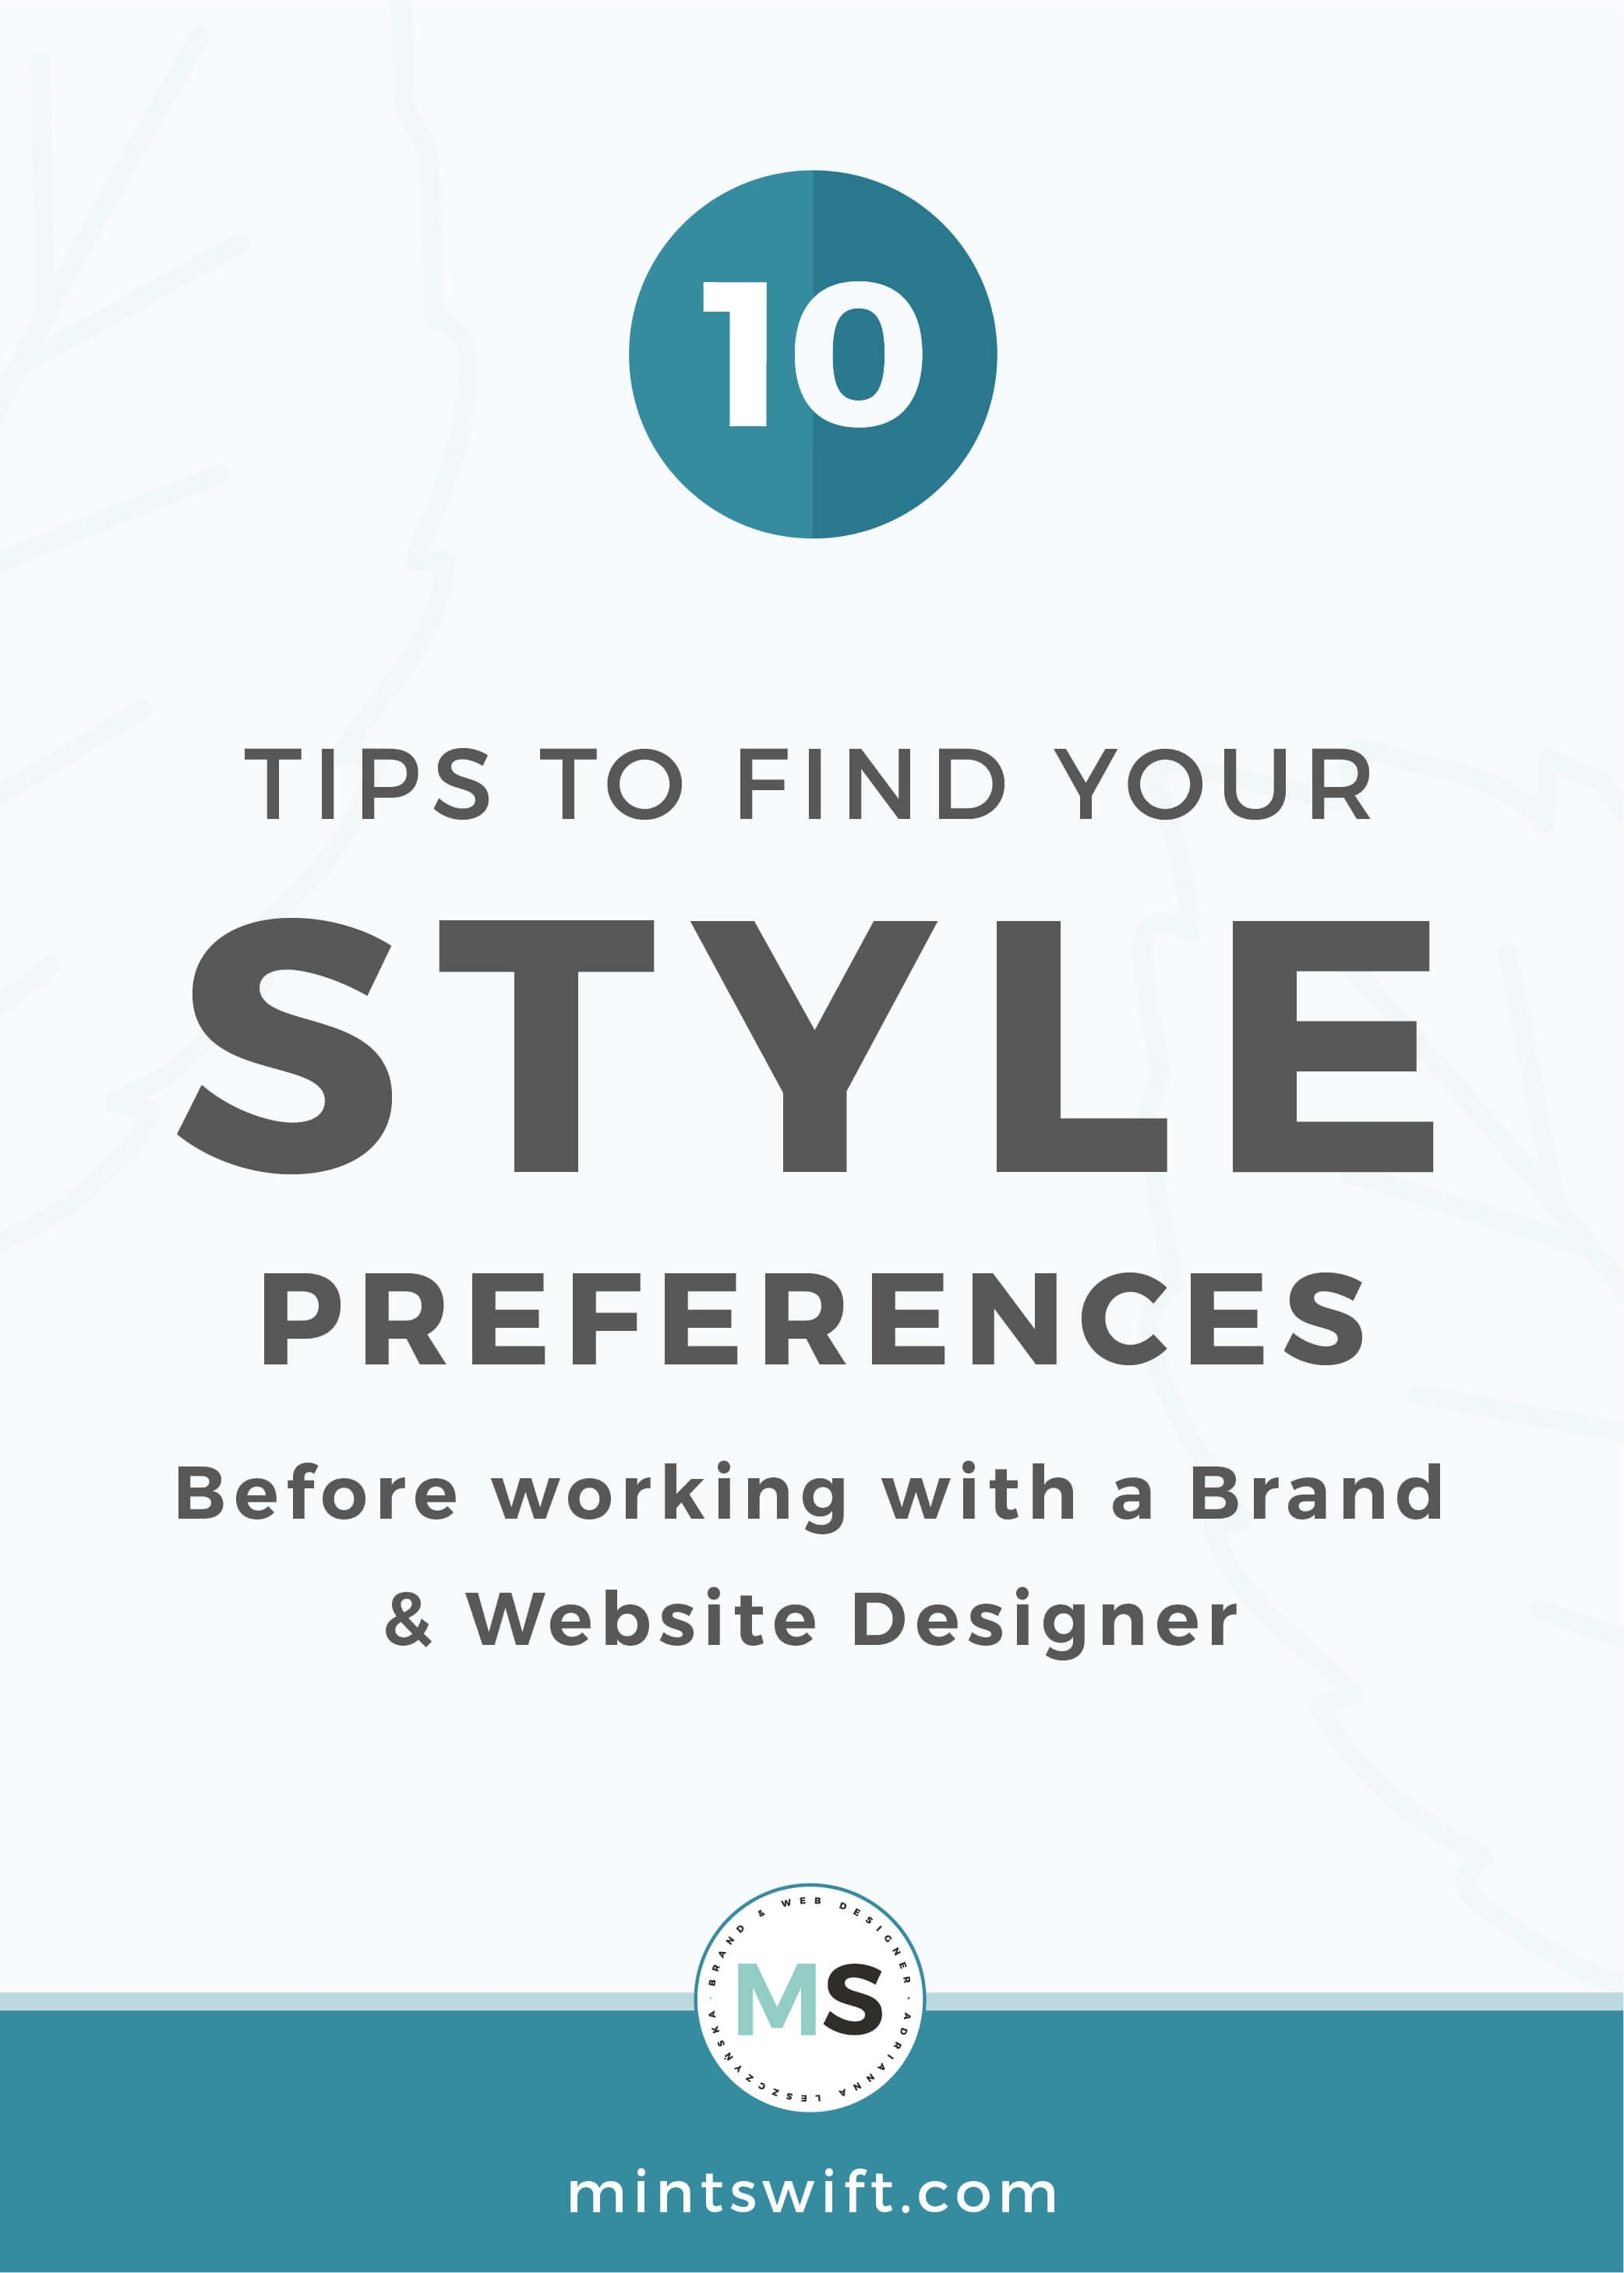 10 Tips to Find Your Style Preferences Before Working with a Brand & Website Designer - MintSwift